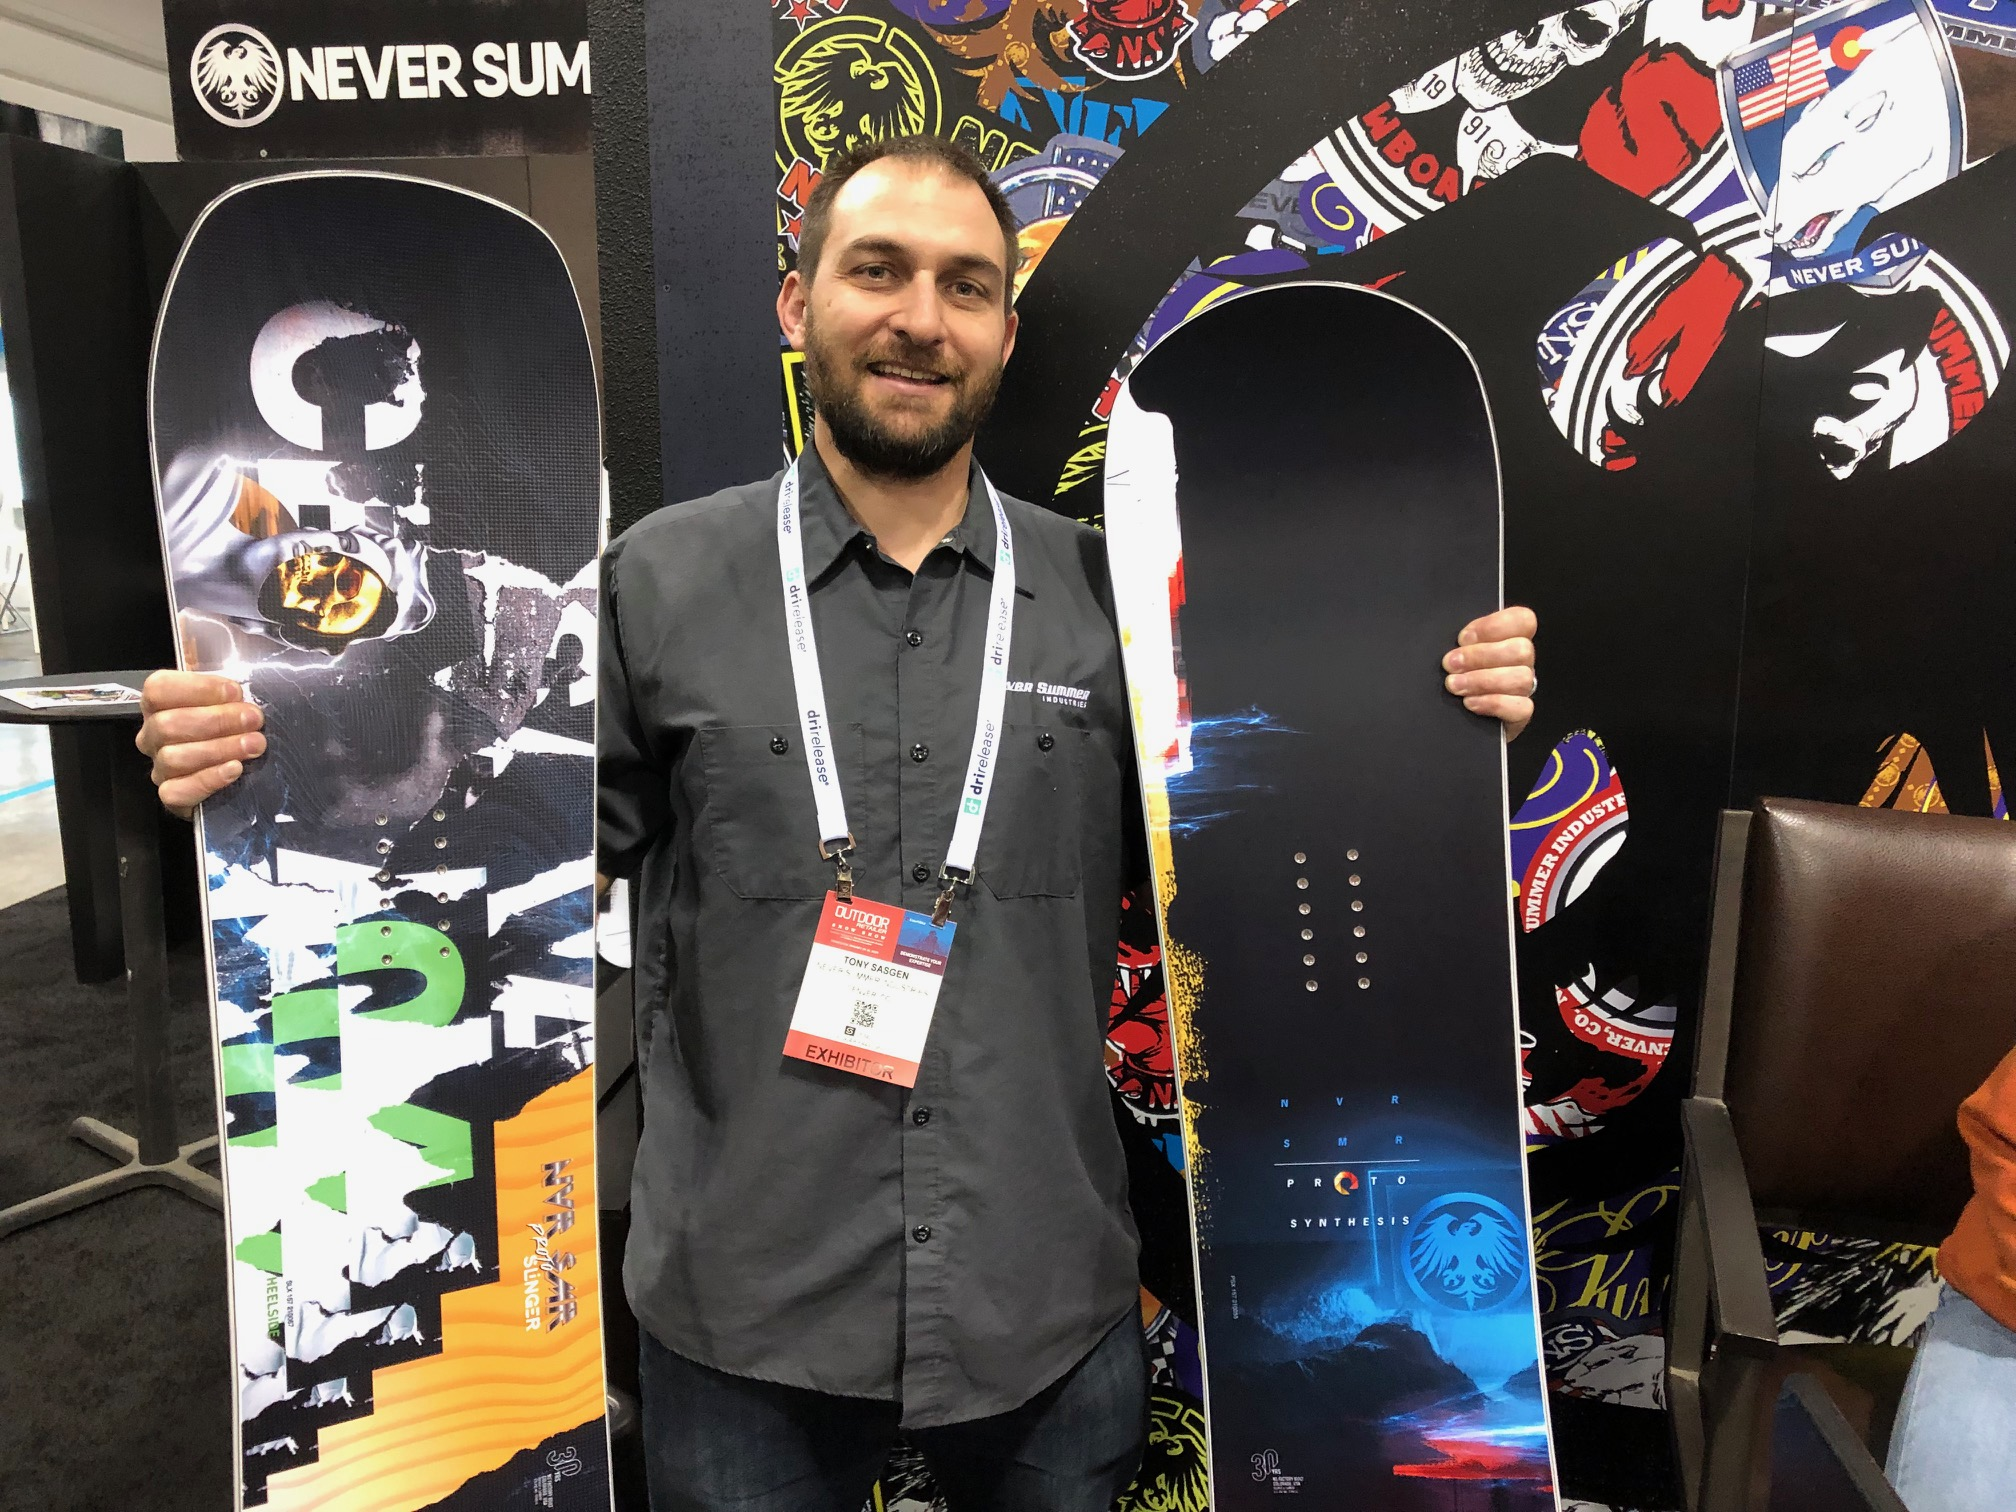 At the 2020 Outdoor Retailer Snow Show, Never Summer's Tony Sasgen shows off the company's WooBoo and Proto Slinger Freestyle AsymTwin snowboards